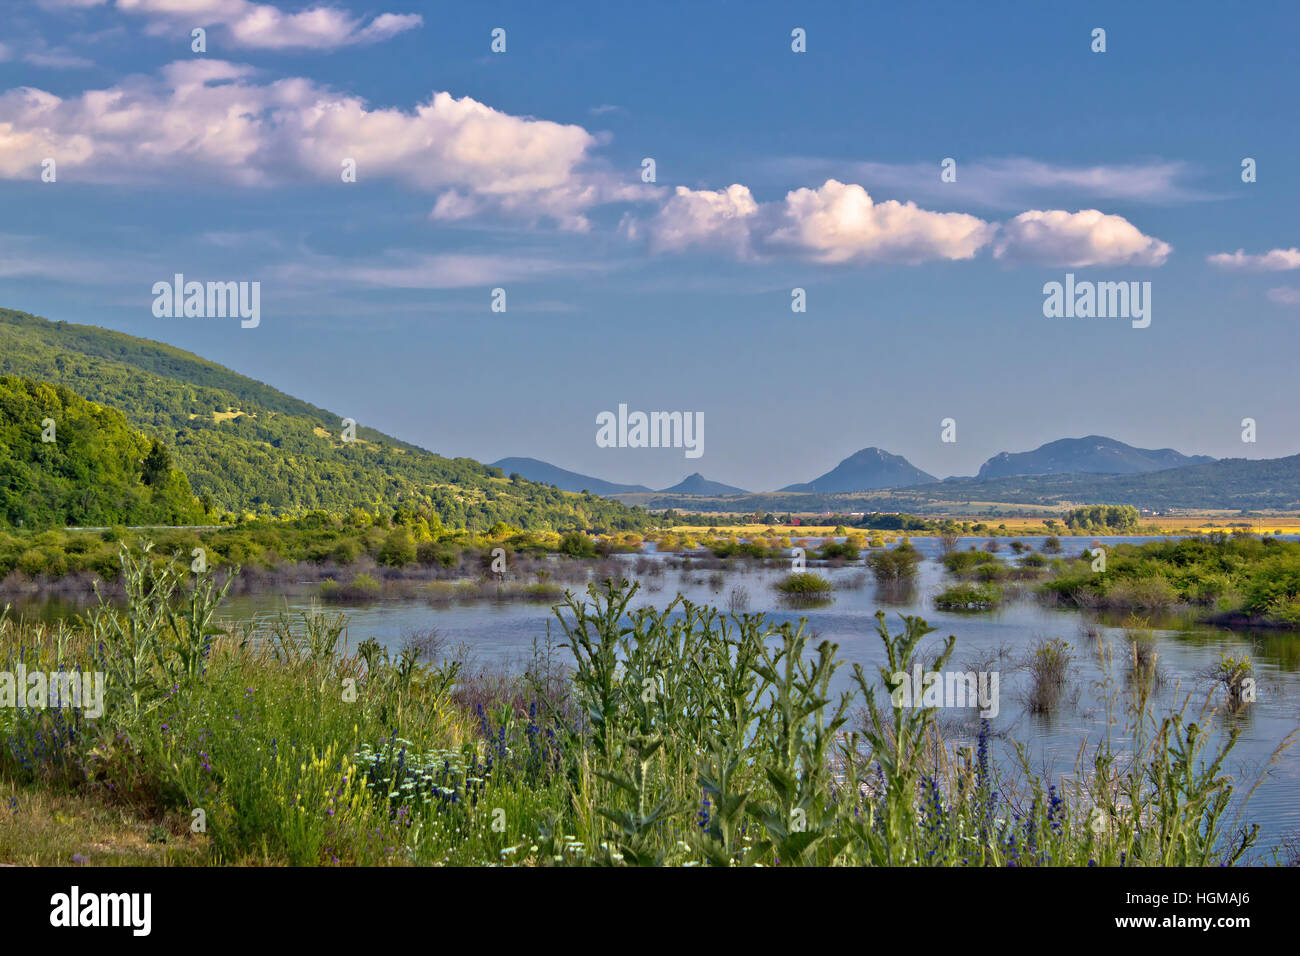 Field of Krbava in Lika region od Croatia - Stock Image